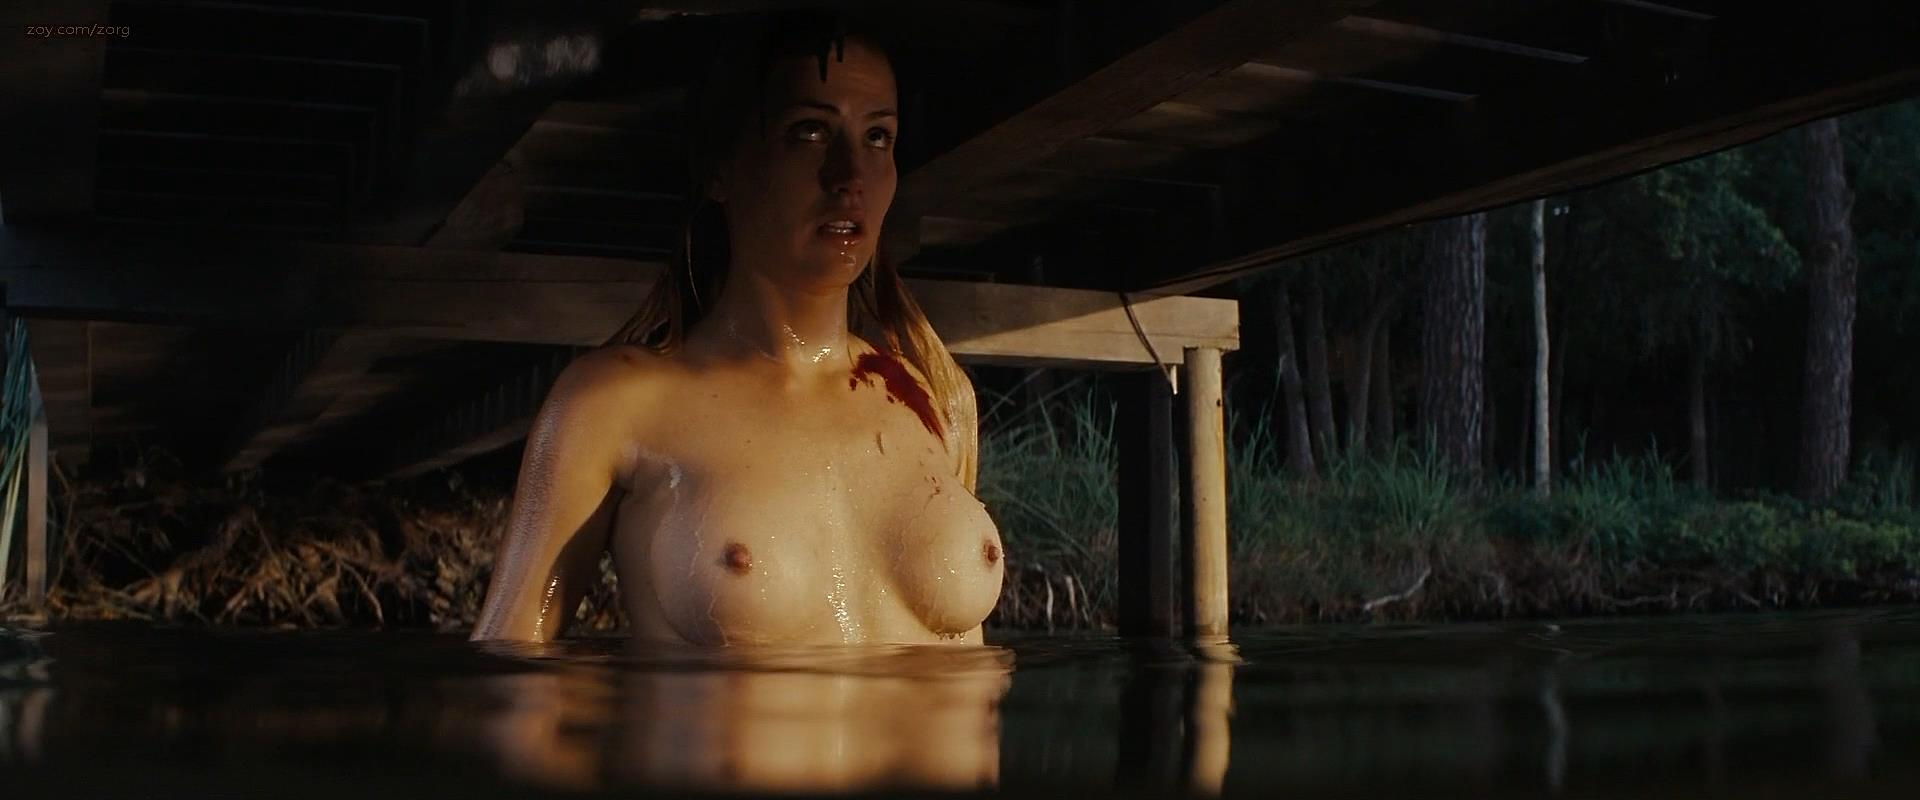 Friday the 13th nude